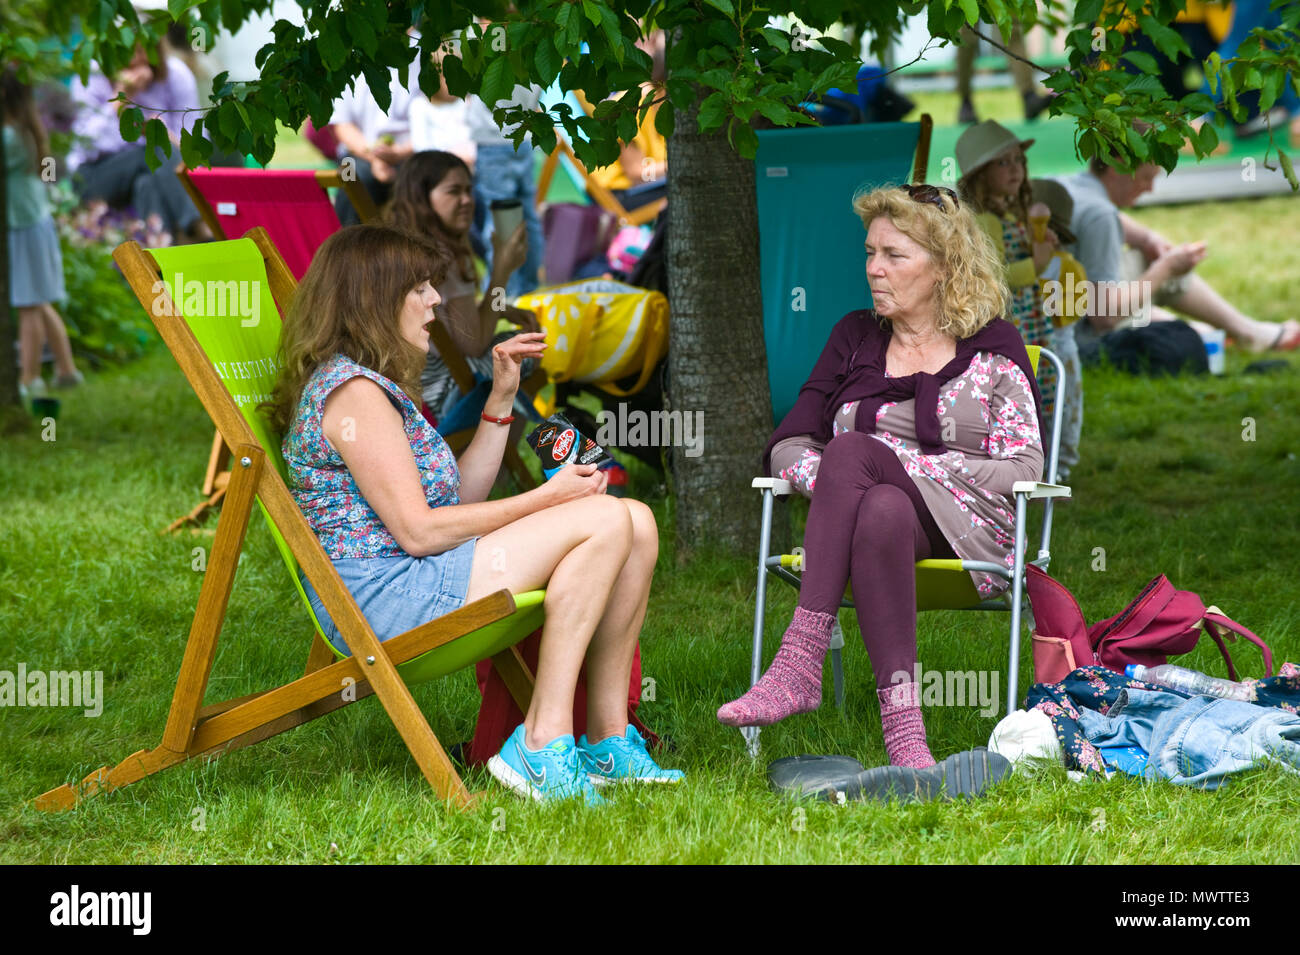 Ladies sat in deckchairs chatting on the lawn in the garden area at Hay Festival 2018 Hay-on-Wye Powys Wales UK - Stock Image